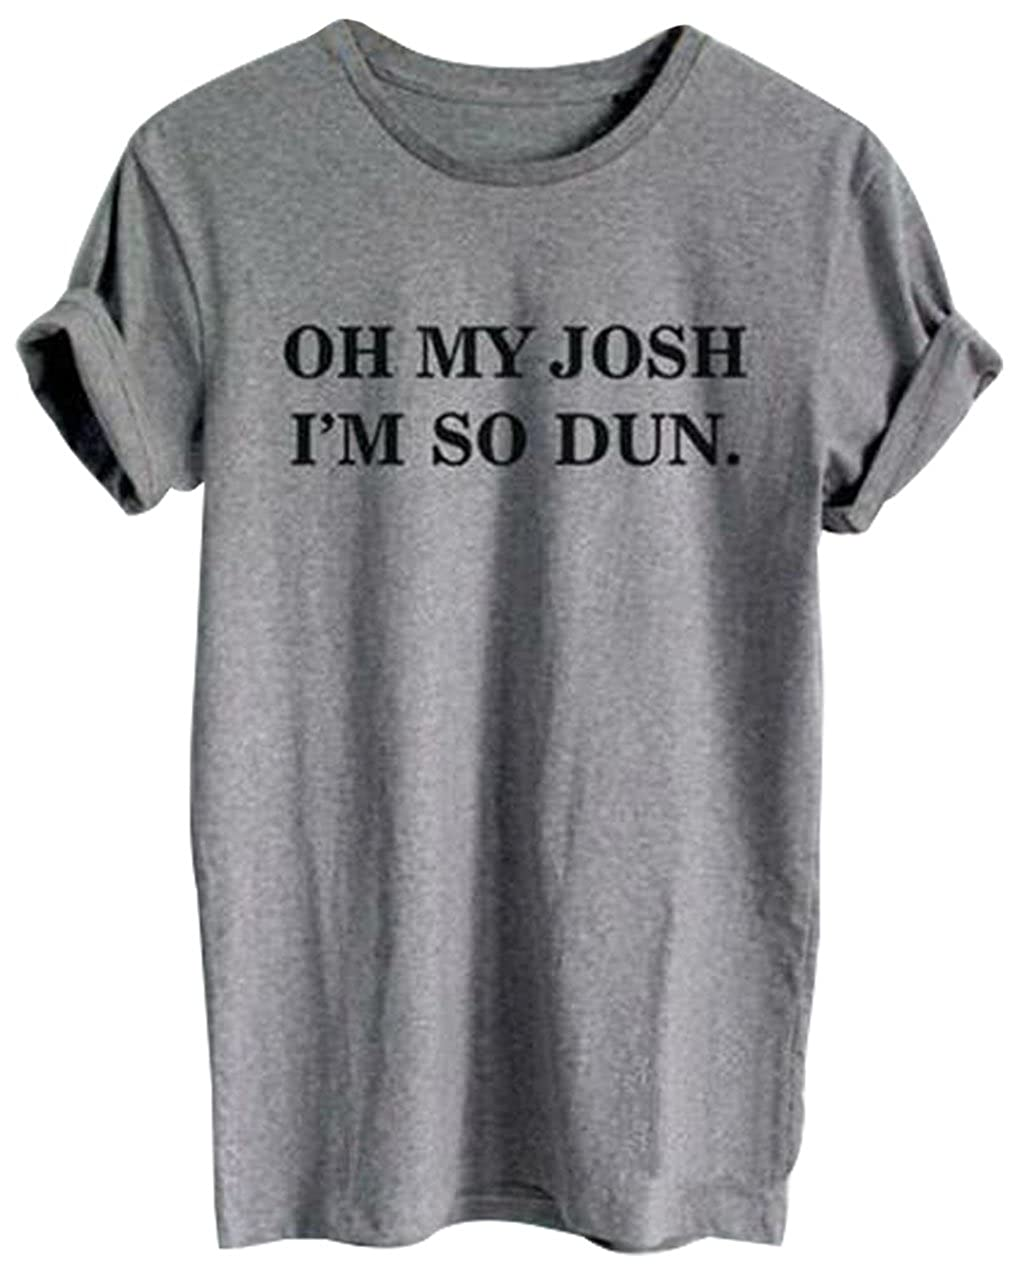 1f03a7a8 Amazon.com: OH My Josh I'm SO DUN Funny T-Shirt Women's Short Sleeve Tops  Tees Blouse: Clothing